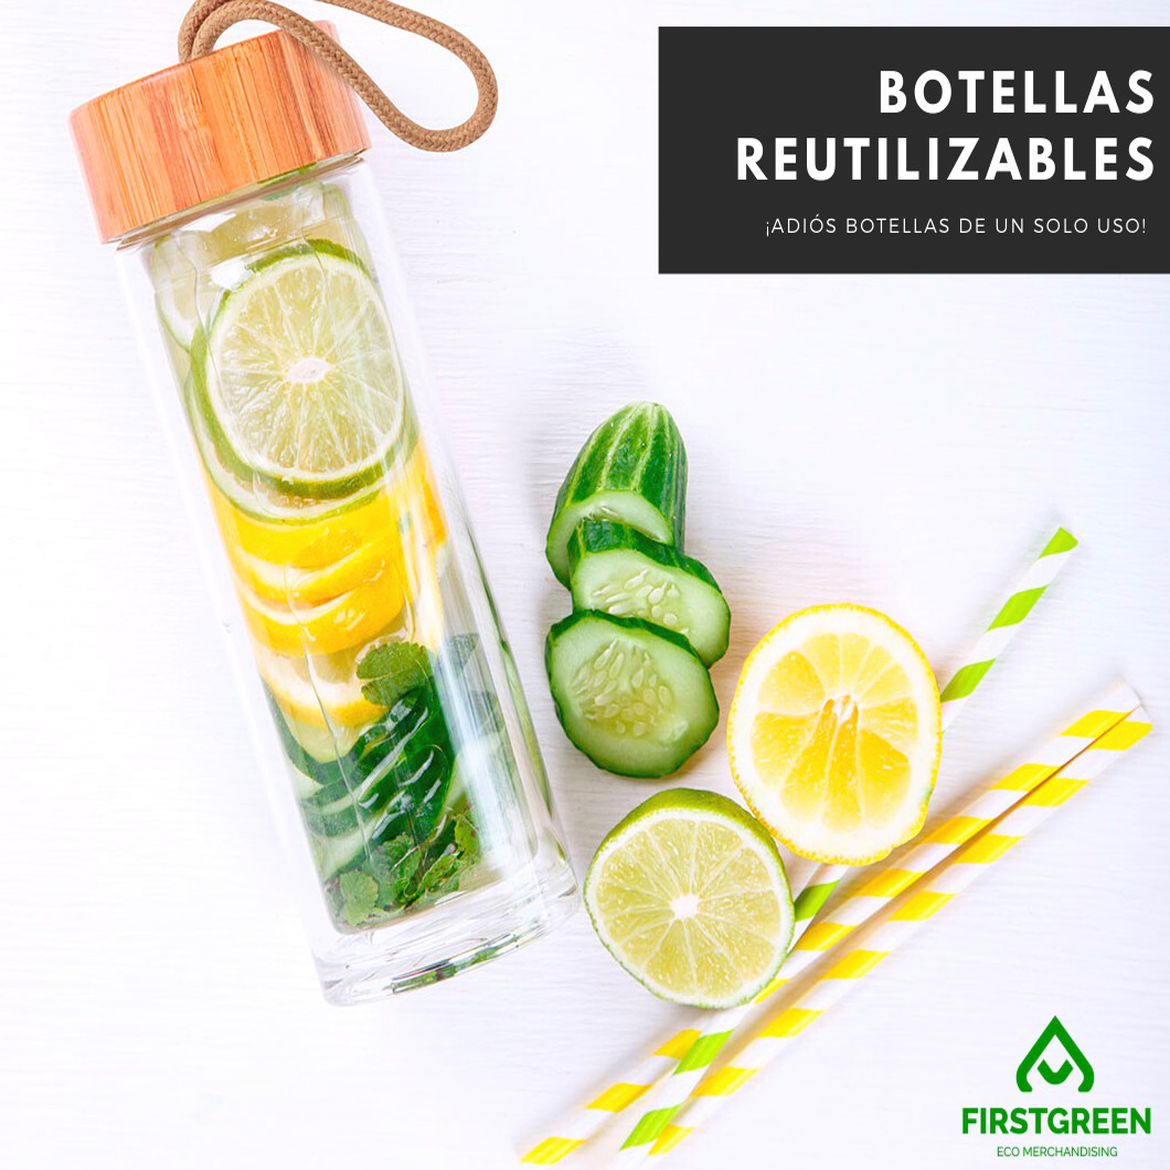 emc_botellas-reutilizables__67